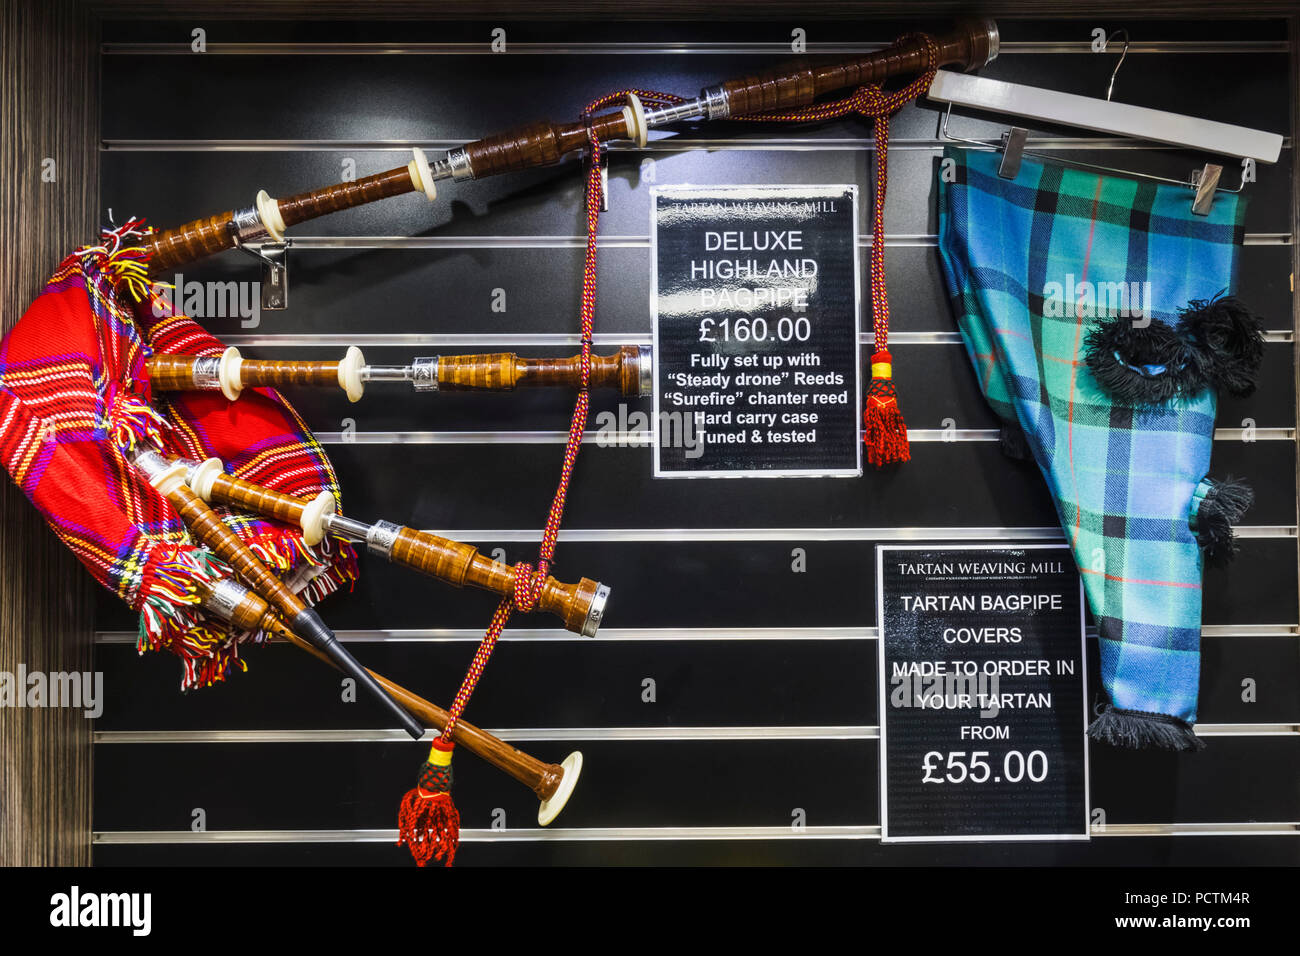 Great Britain, Scotland, Edinburgh, The Royal Mile, The Tartan Weaving Mill Store, Bagpipes - Stock Image